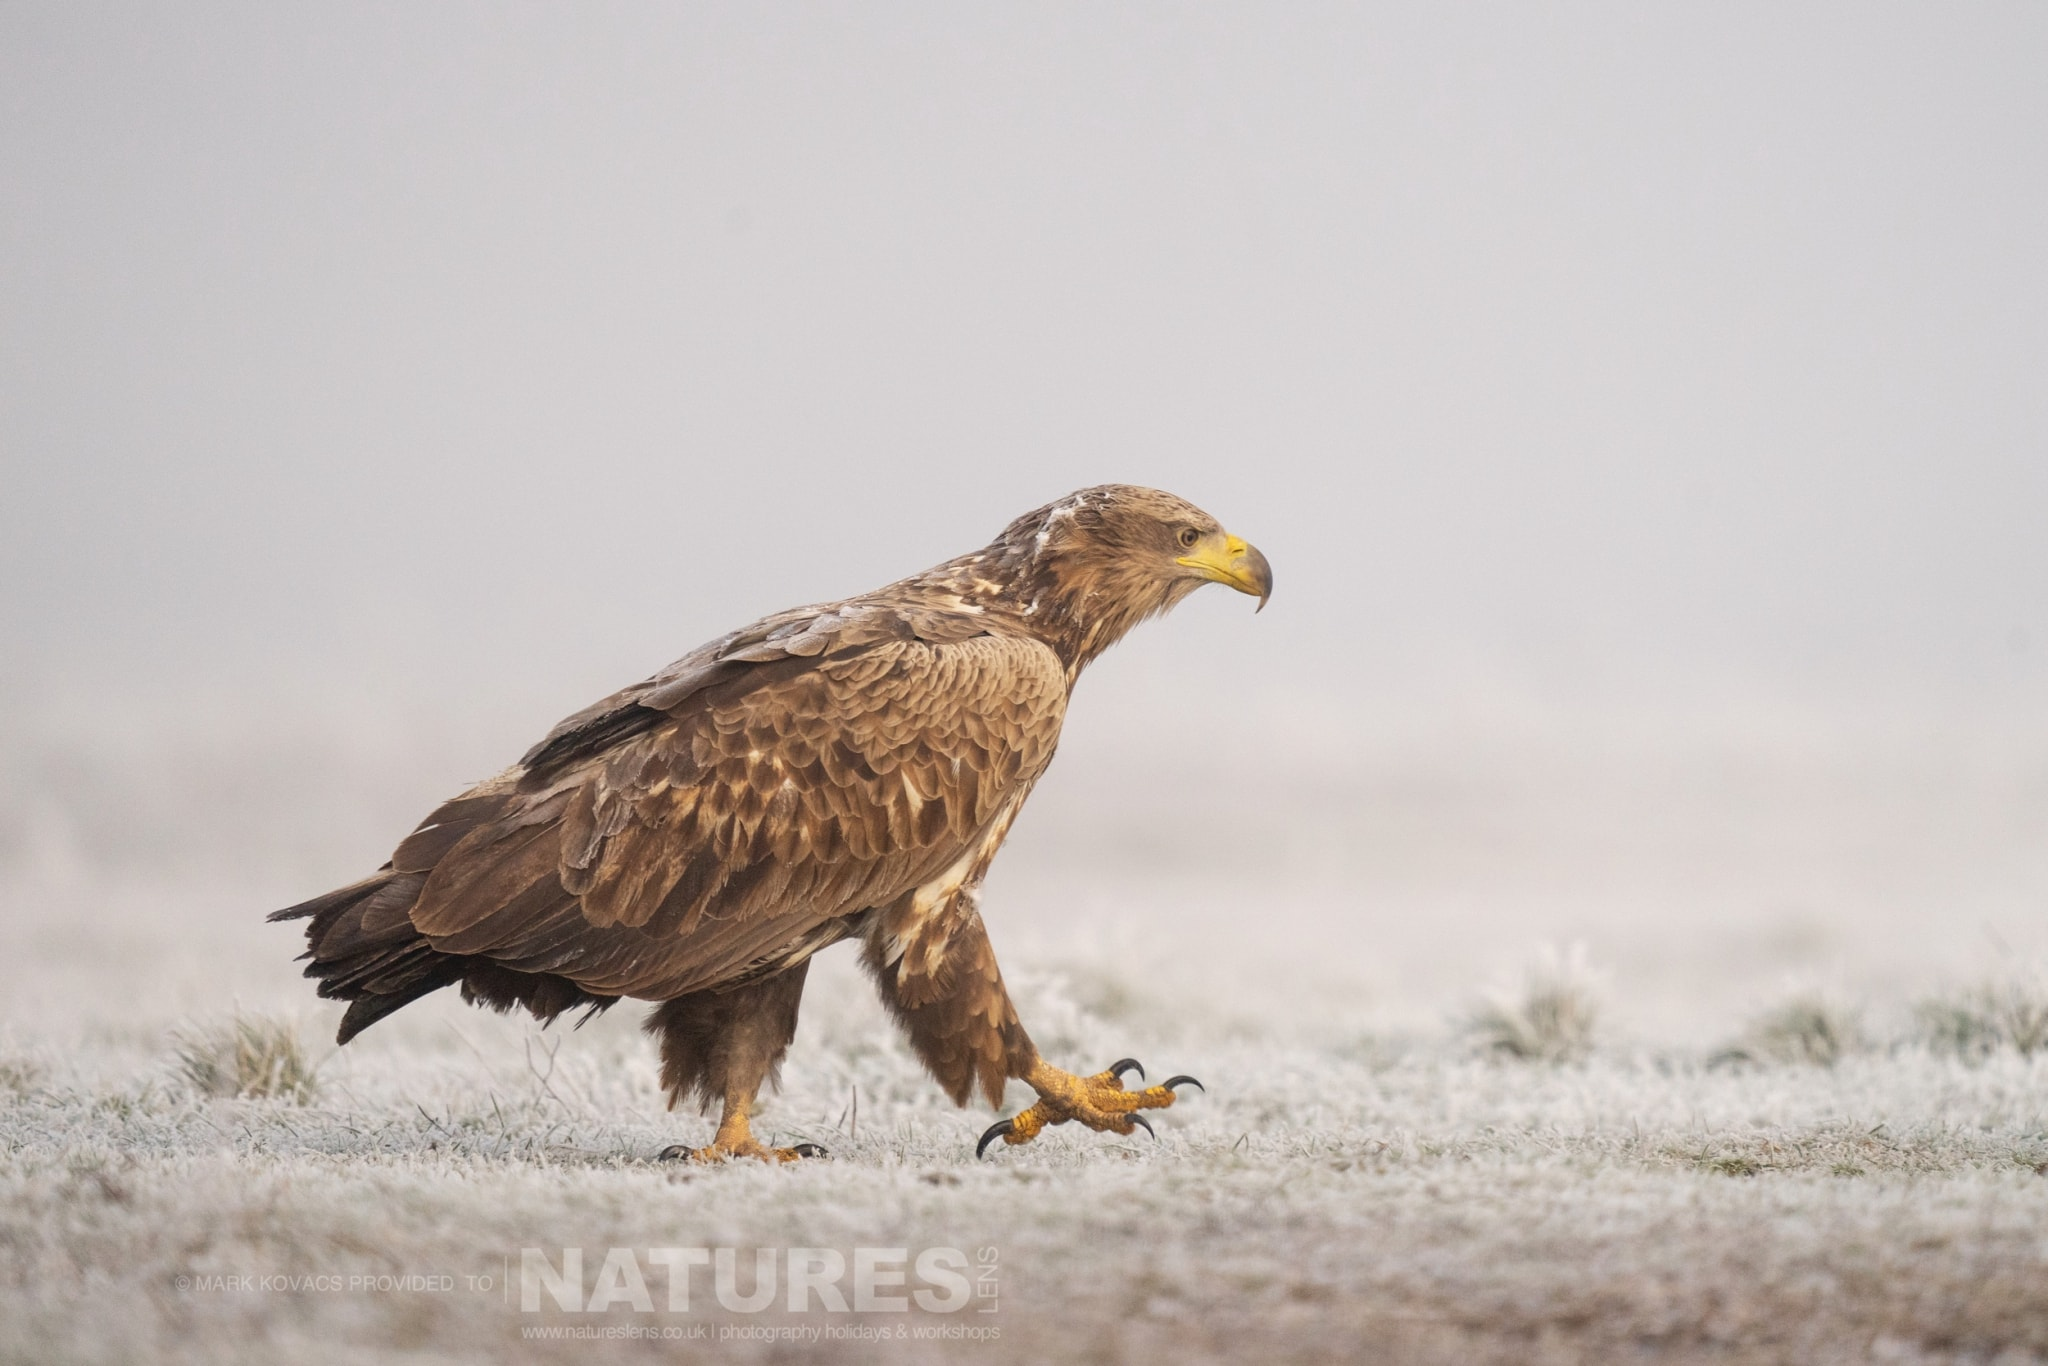 A White tailed Sea Eagle strides across the ground in front of one of the hides photographed at the locations for the Winter Eagles of the Hortobagy photography holiday